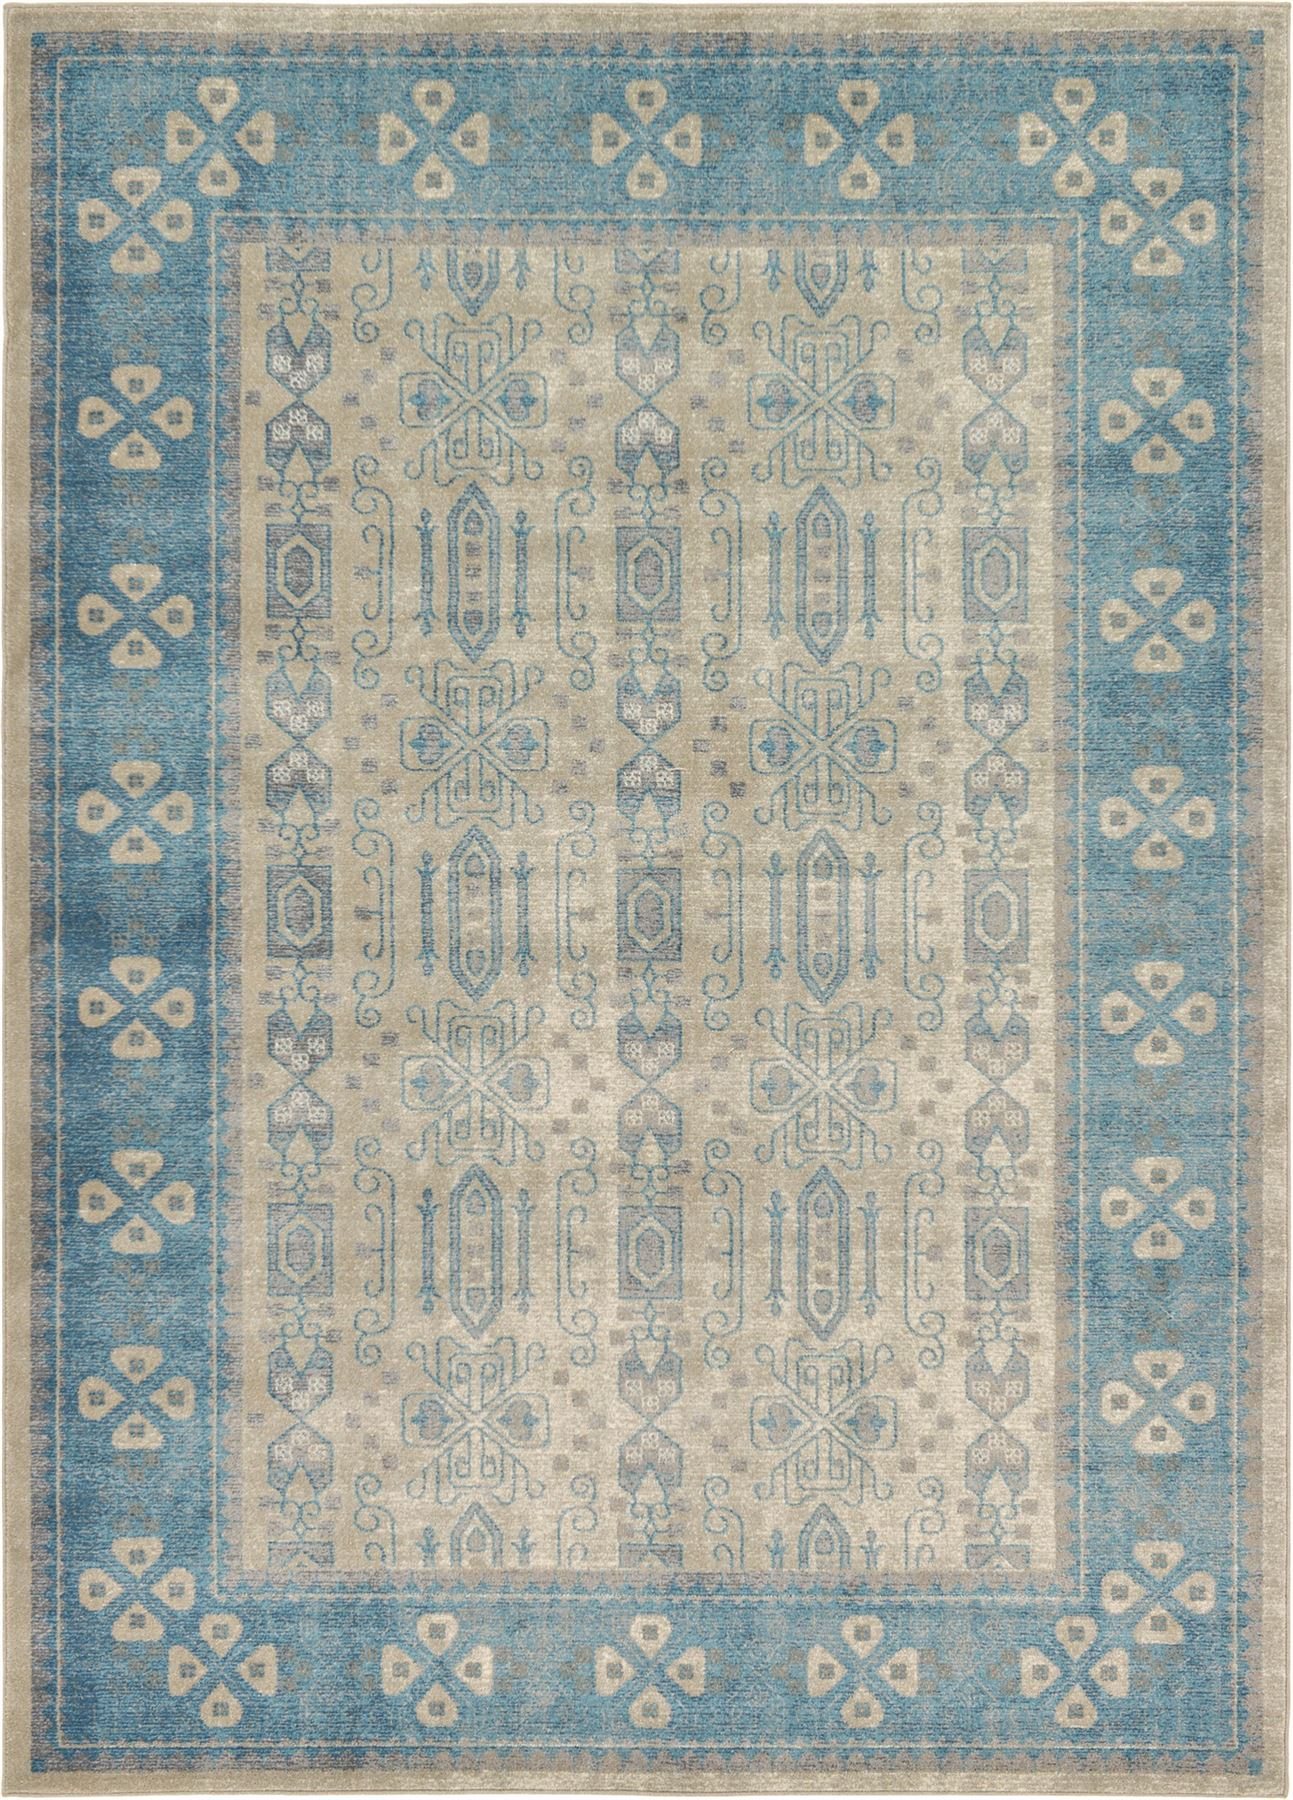 Large Oriental Area Rug Traditional Faded Vintage Design Small Carpet